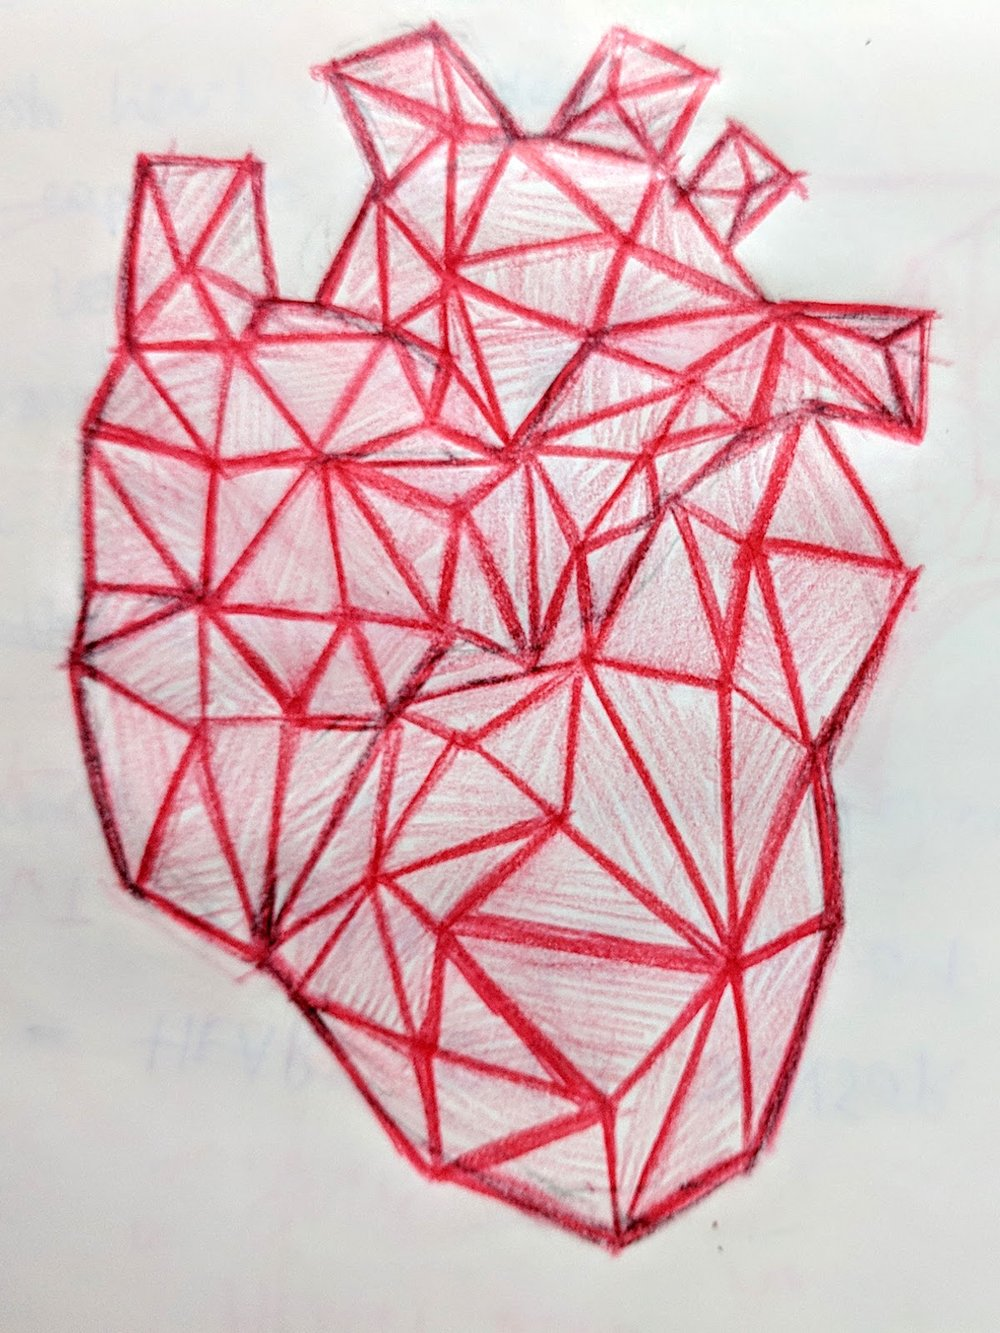 W9_heart embroidery sketch.jpg